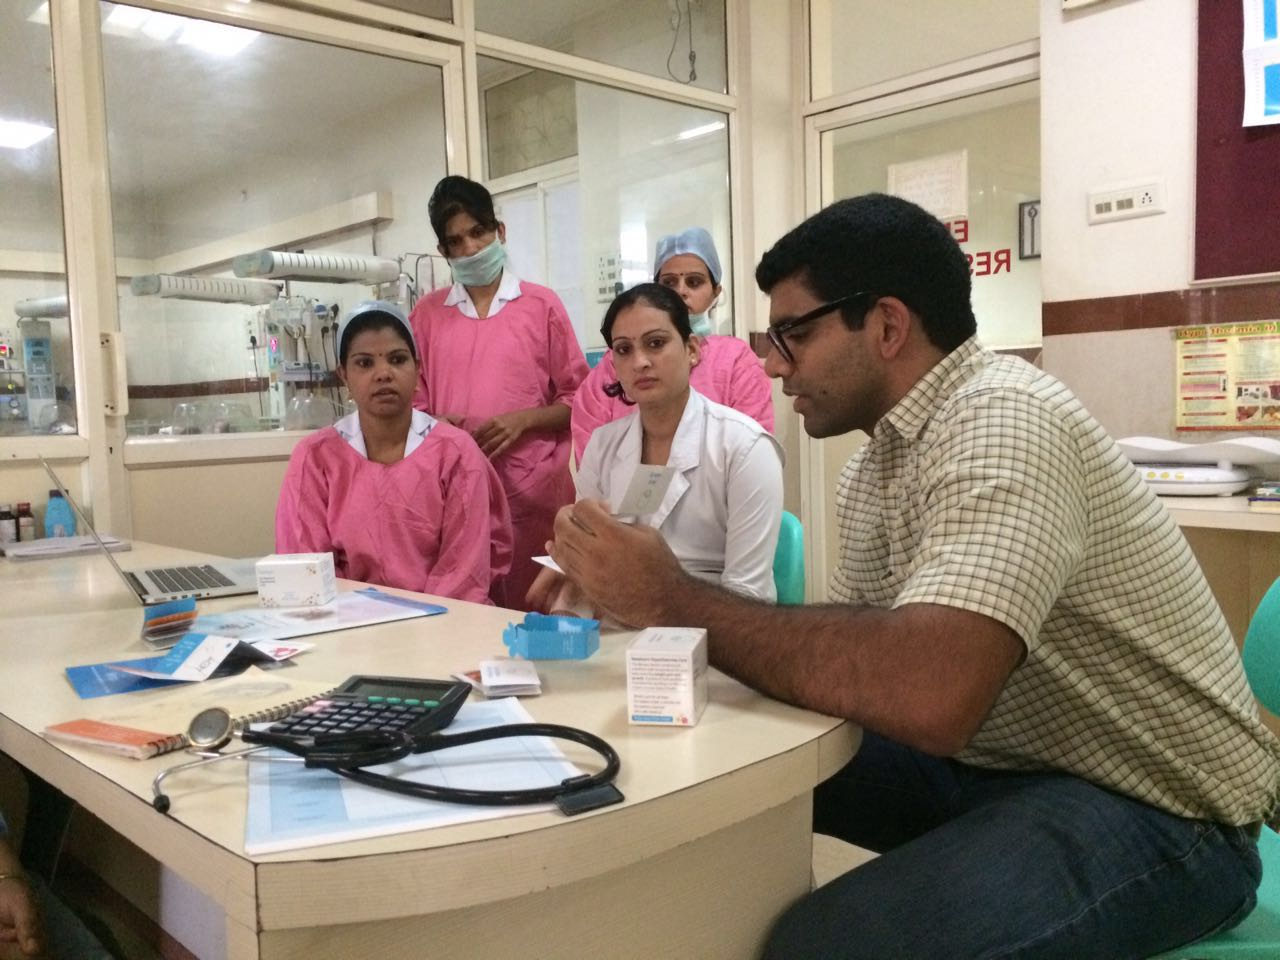 Ratul Narain, our founder, training a group of doctors and nurses for a study in Madhya Pradesh, India.